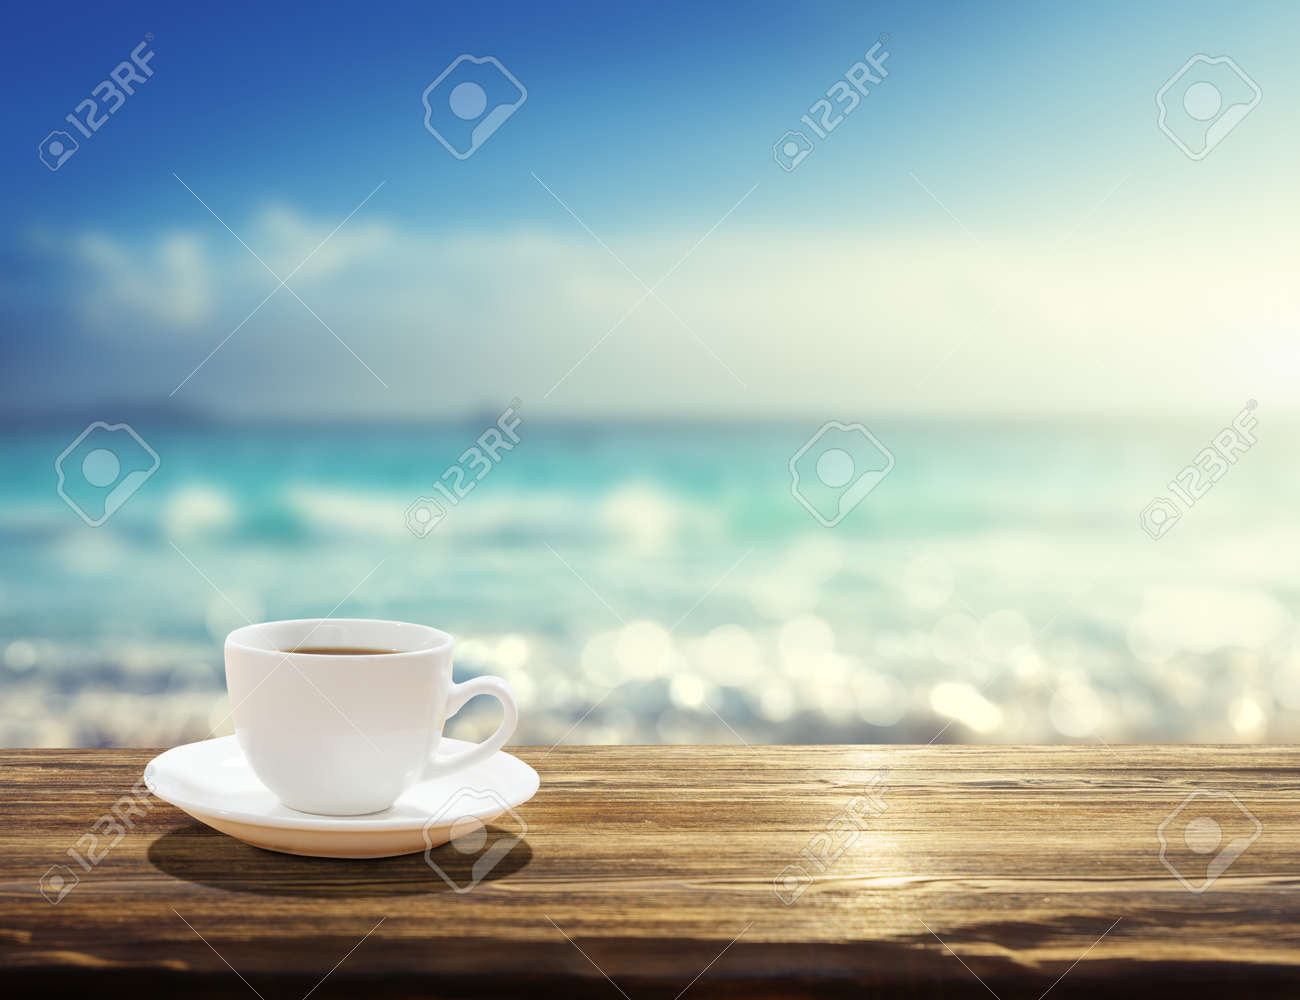 sea and cup of coffee - 51293870